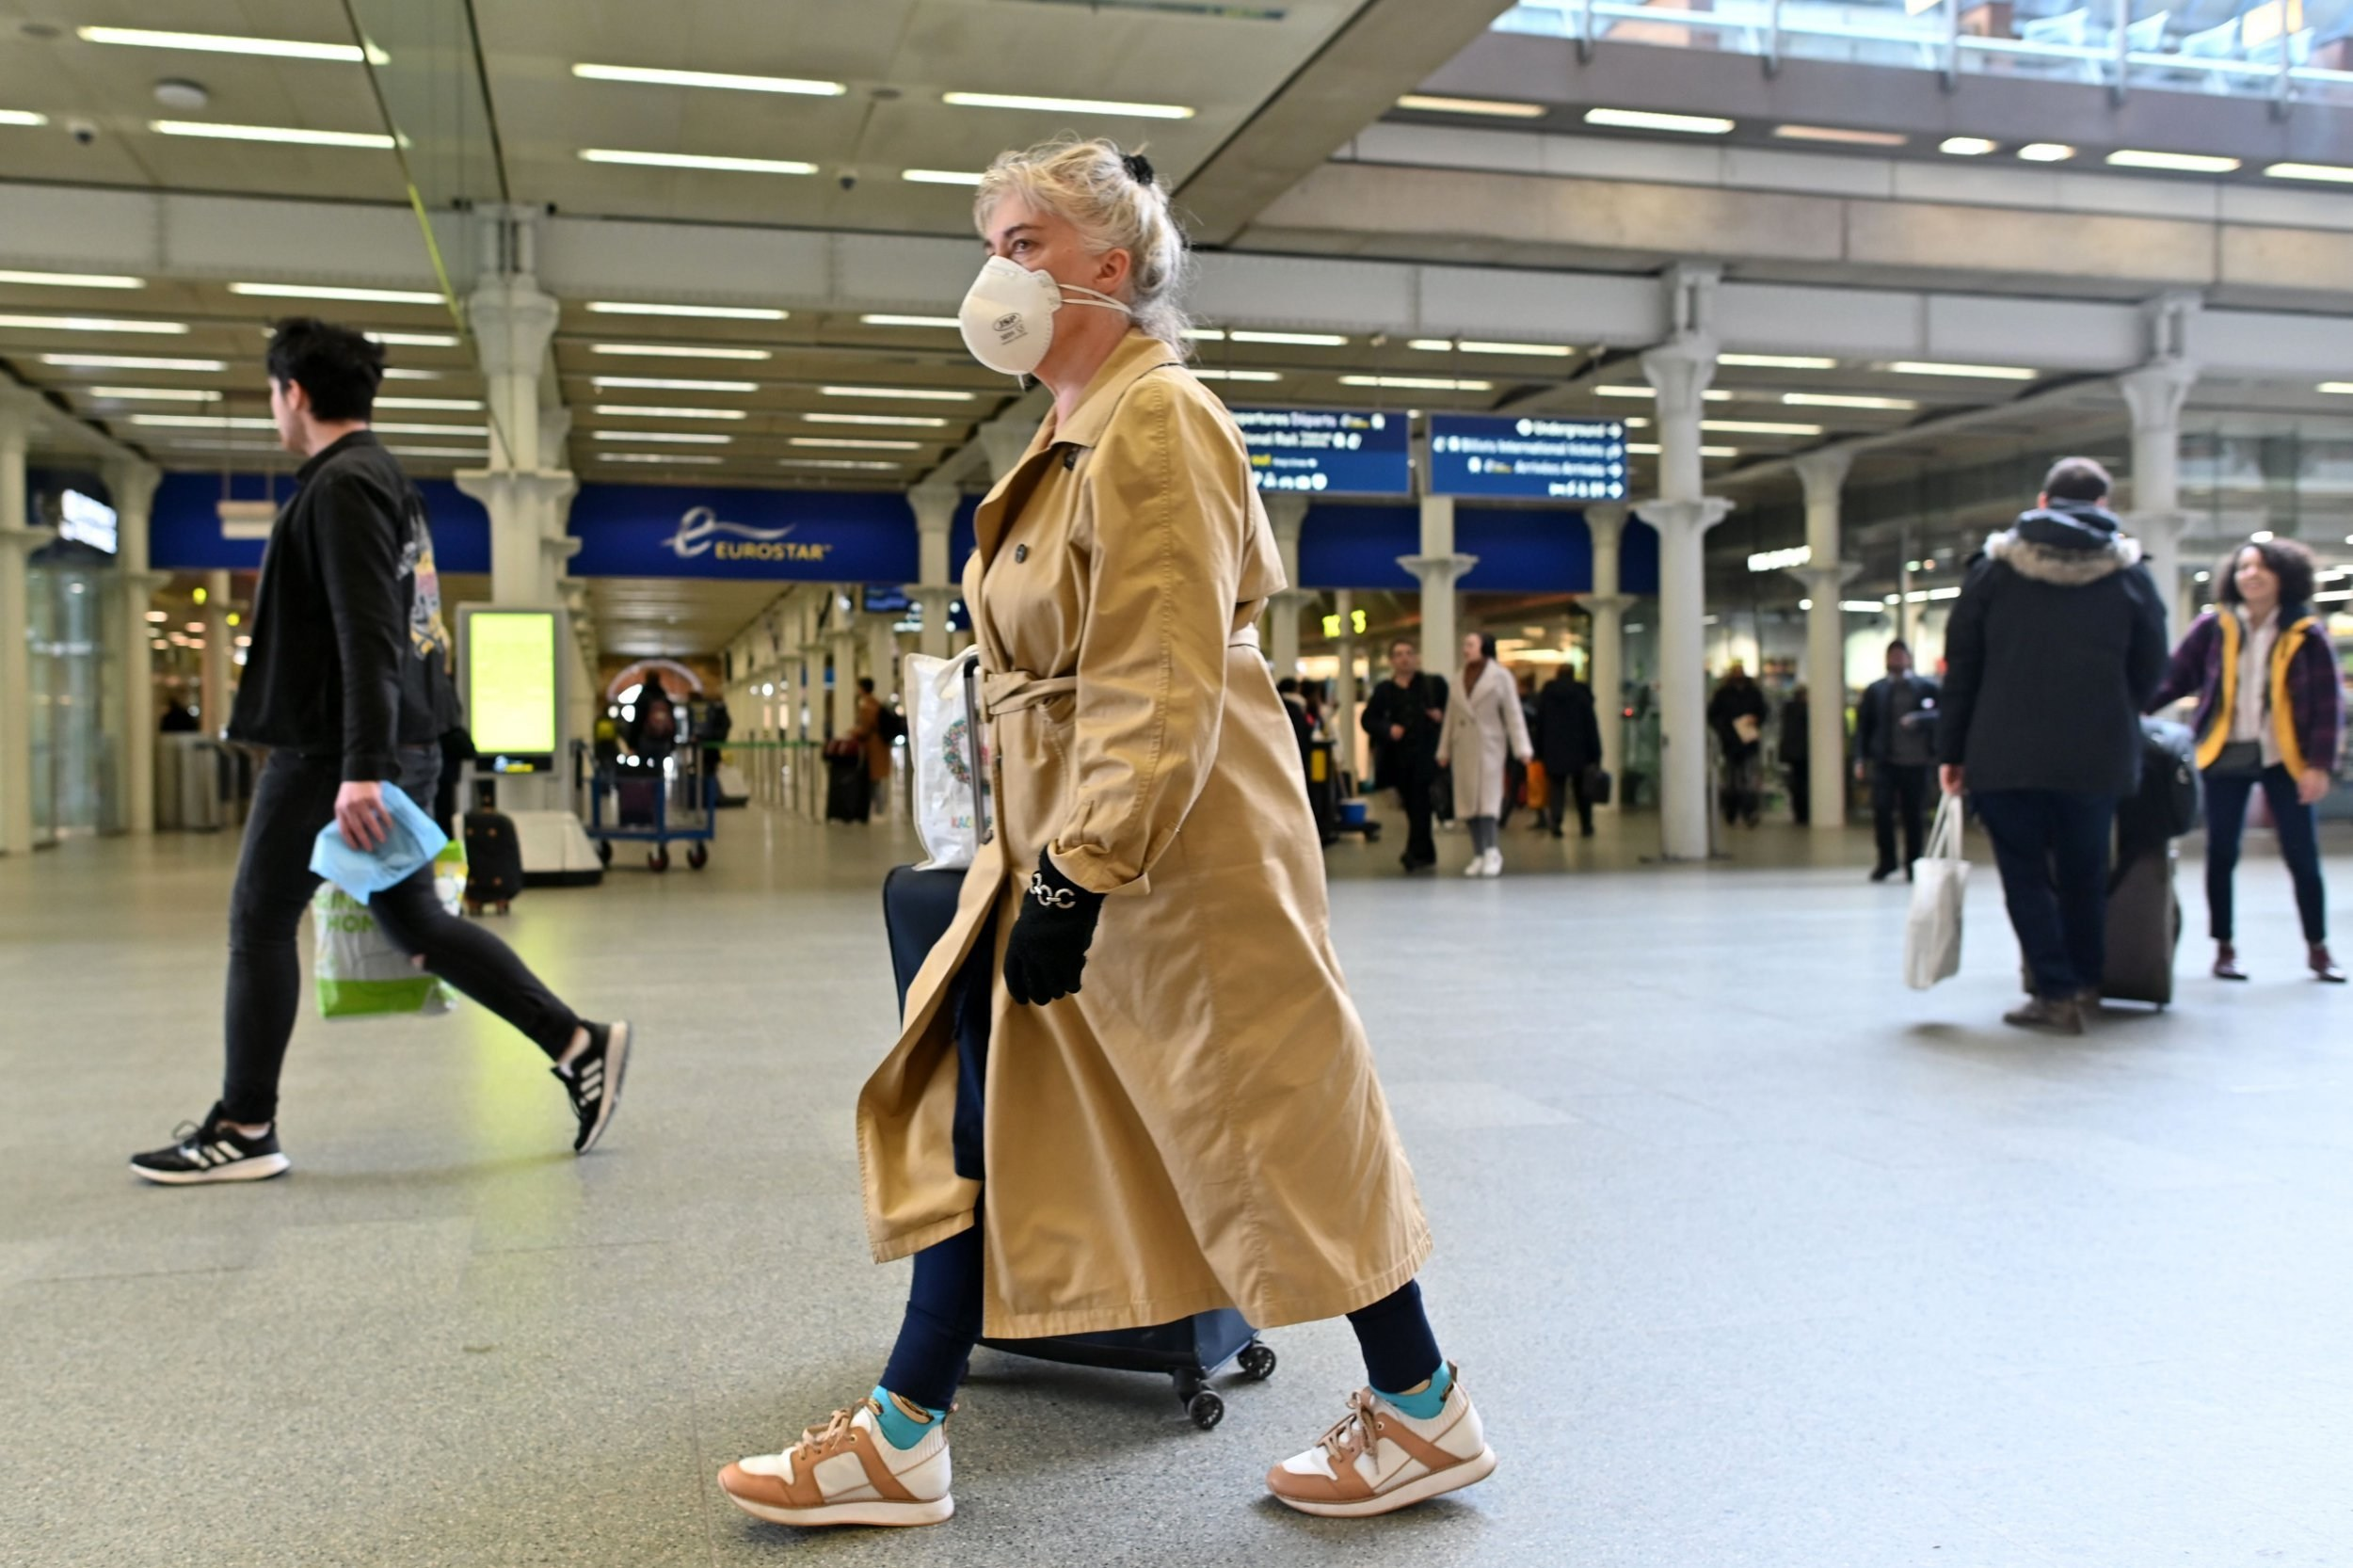 Eurostar says all passengers must wear face masks from next week